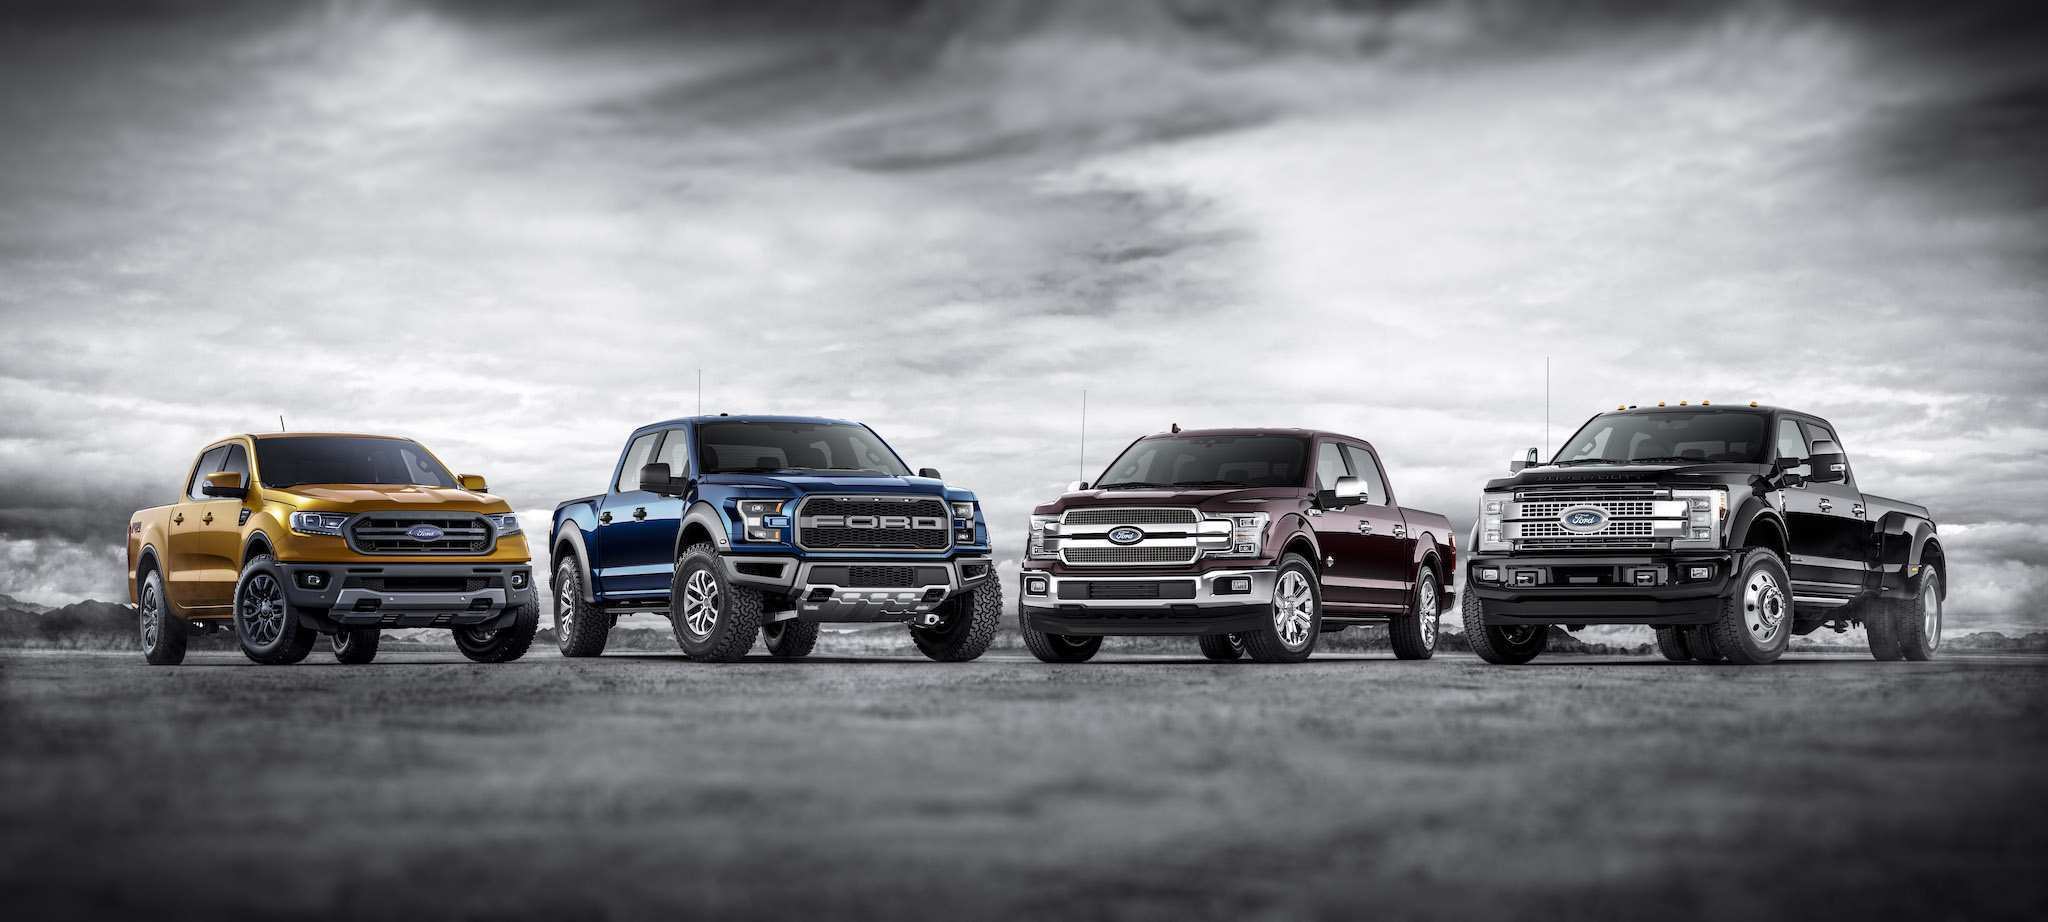 25 All New Ford Lineup 2020 Photos